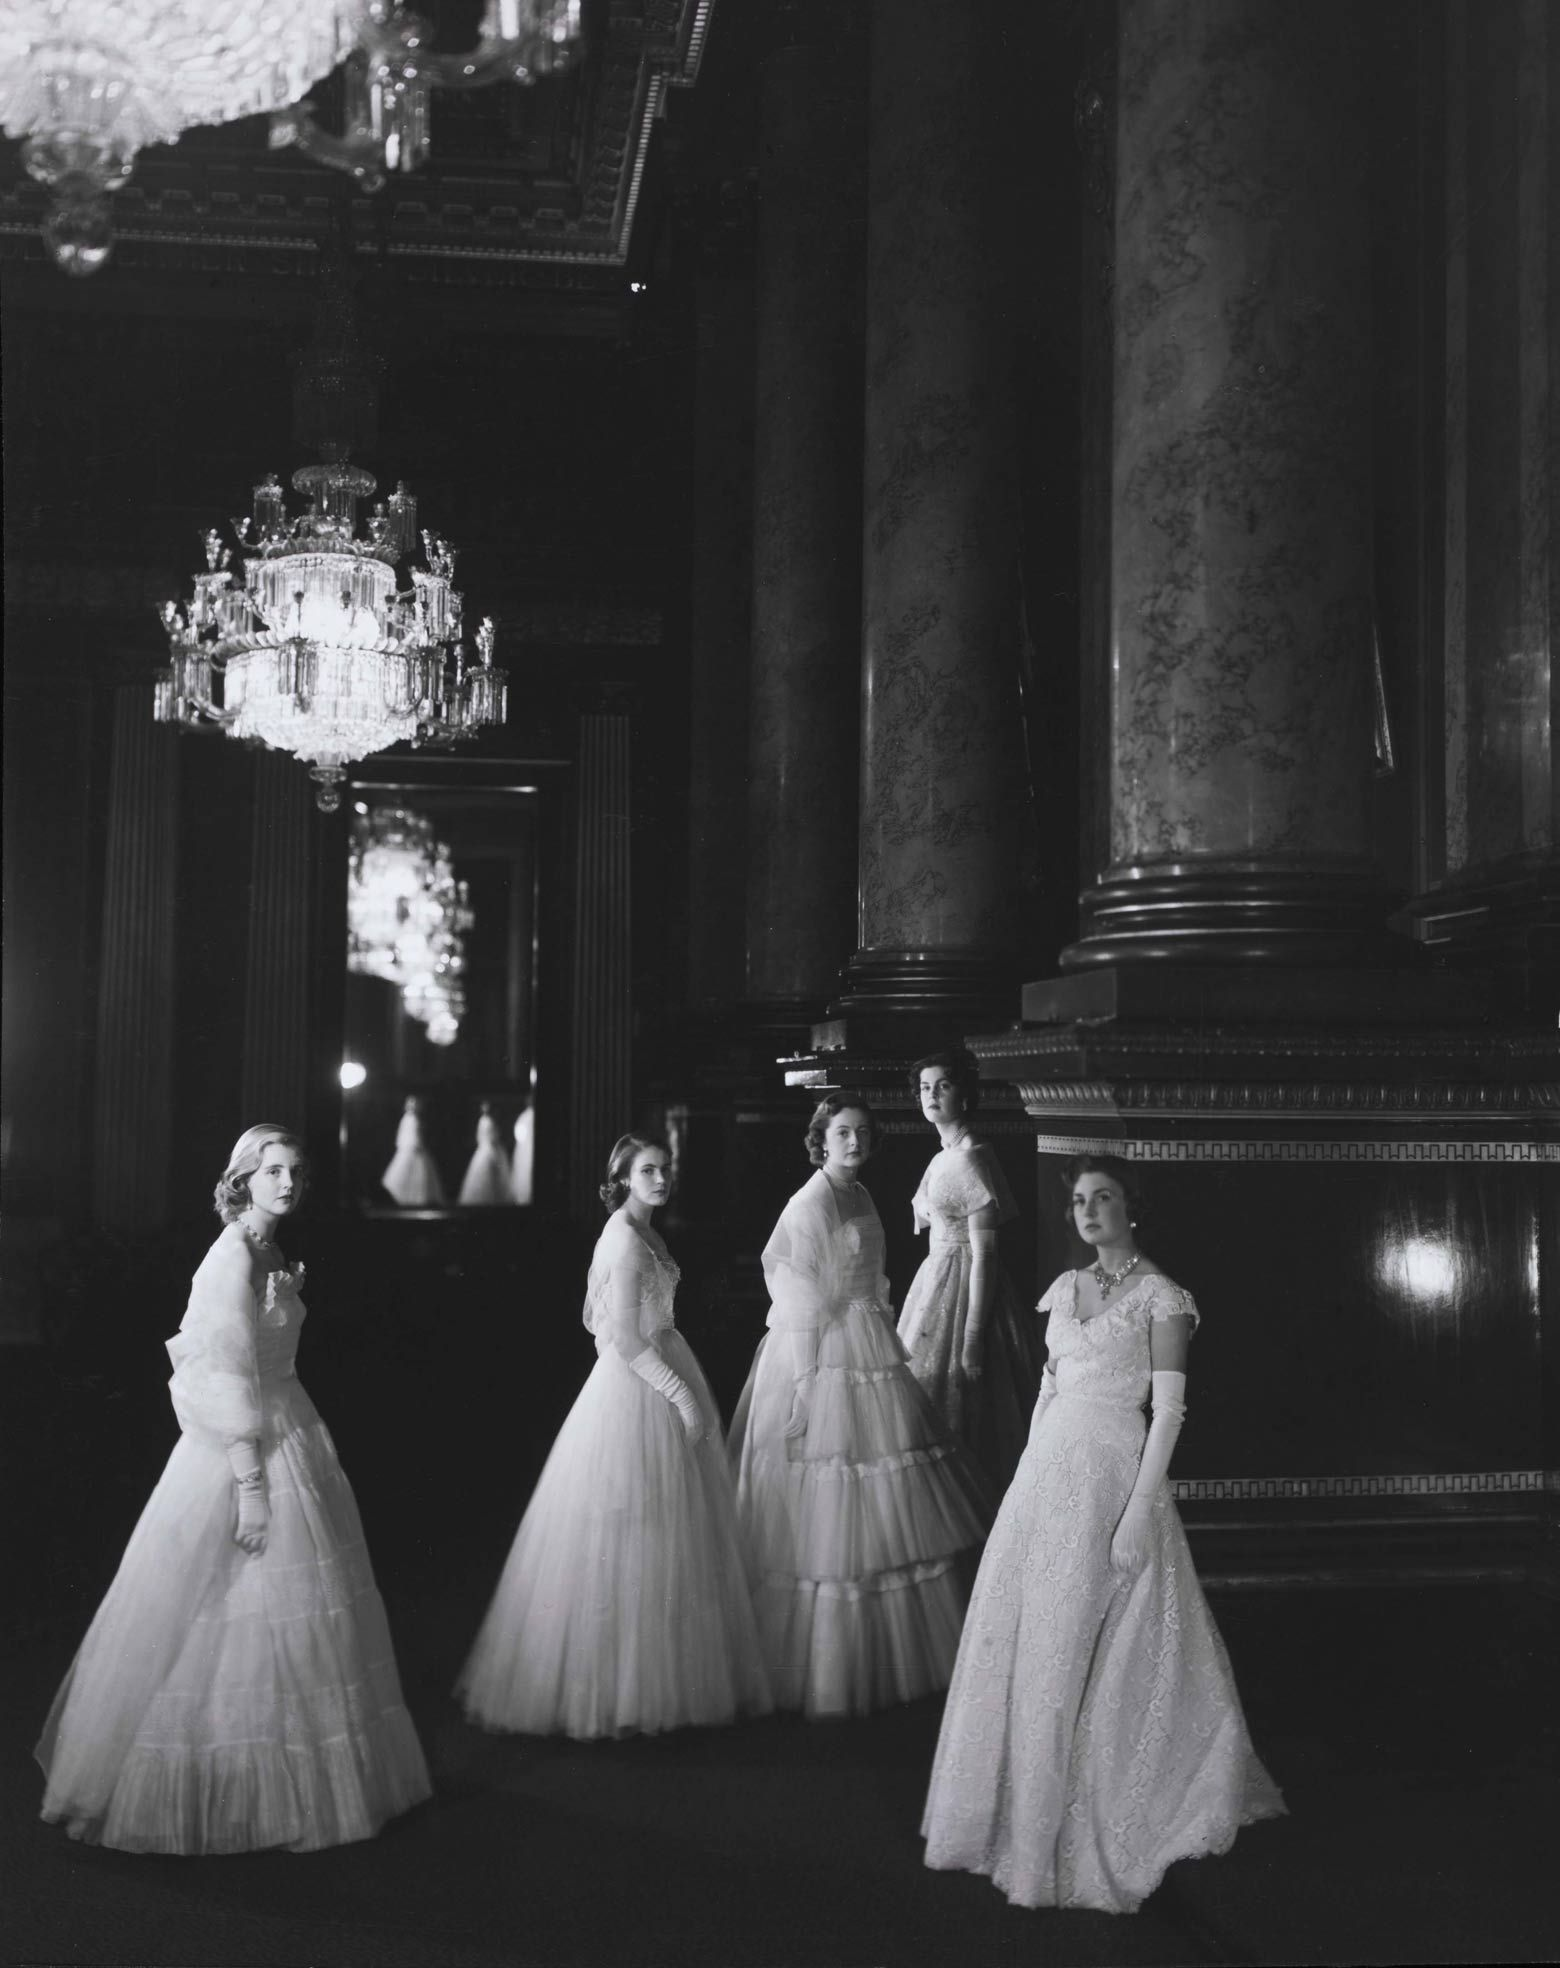 Maids Of Honour Shot By Cecil Beaton At The Coronation Of Queen